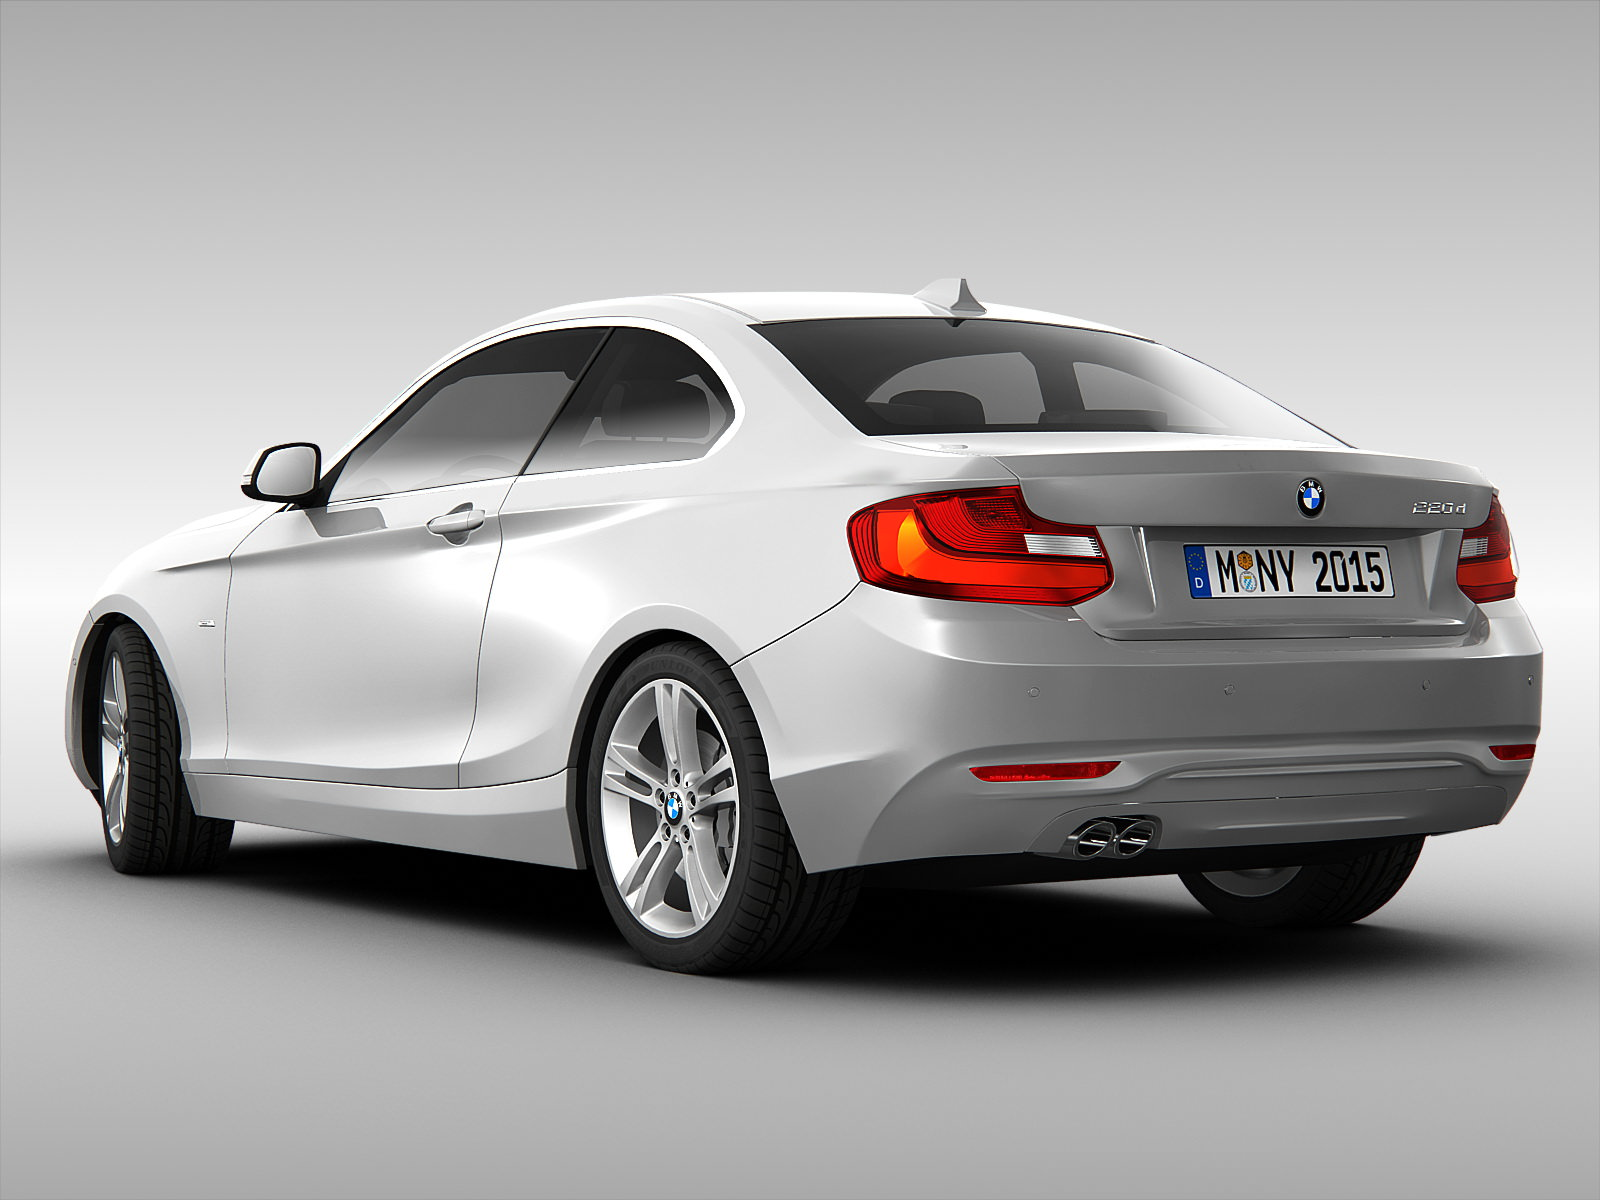 Bmw 2015 Models 19 Free Hd Car Wallpaper